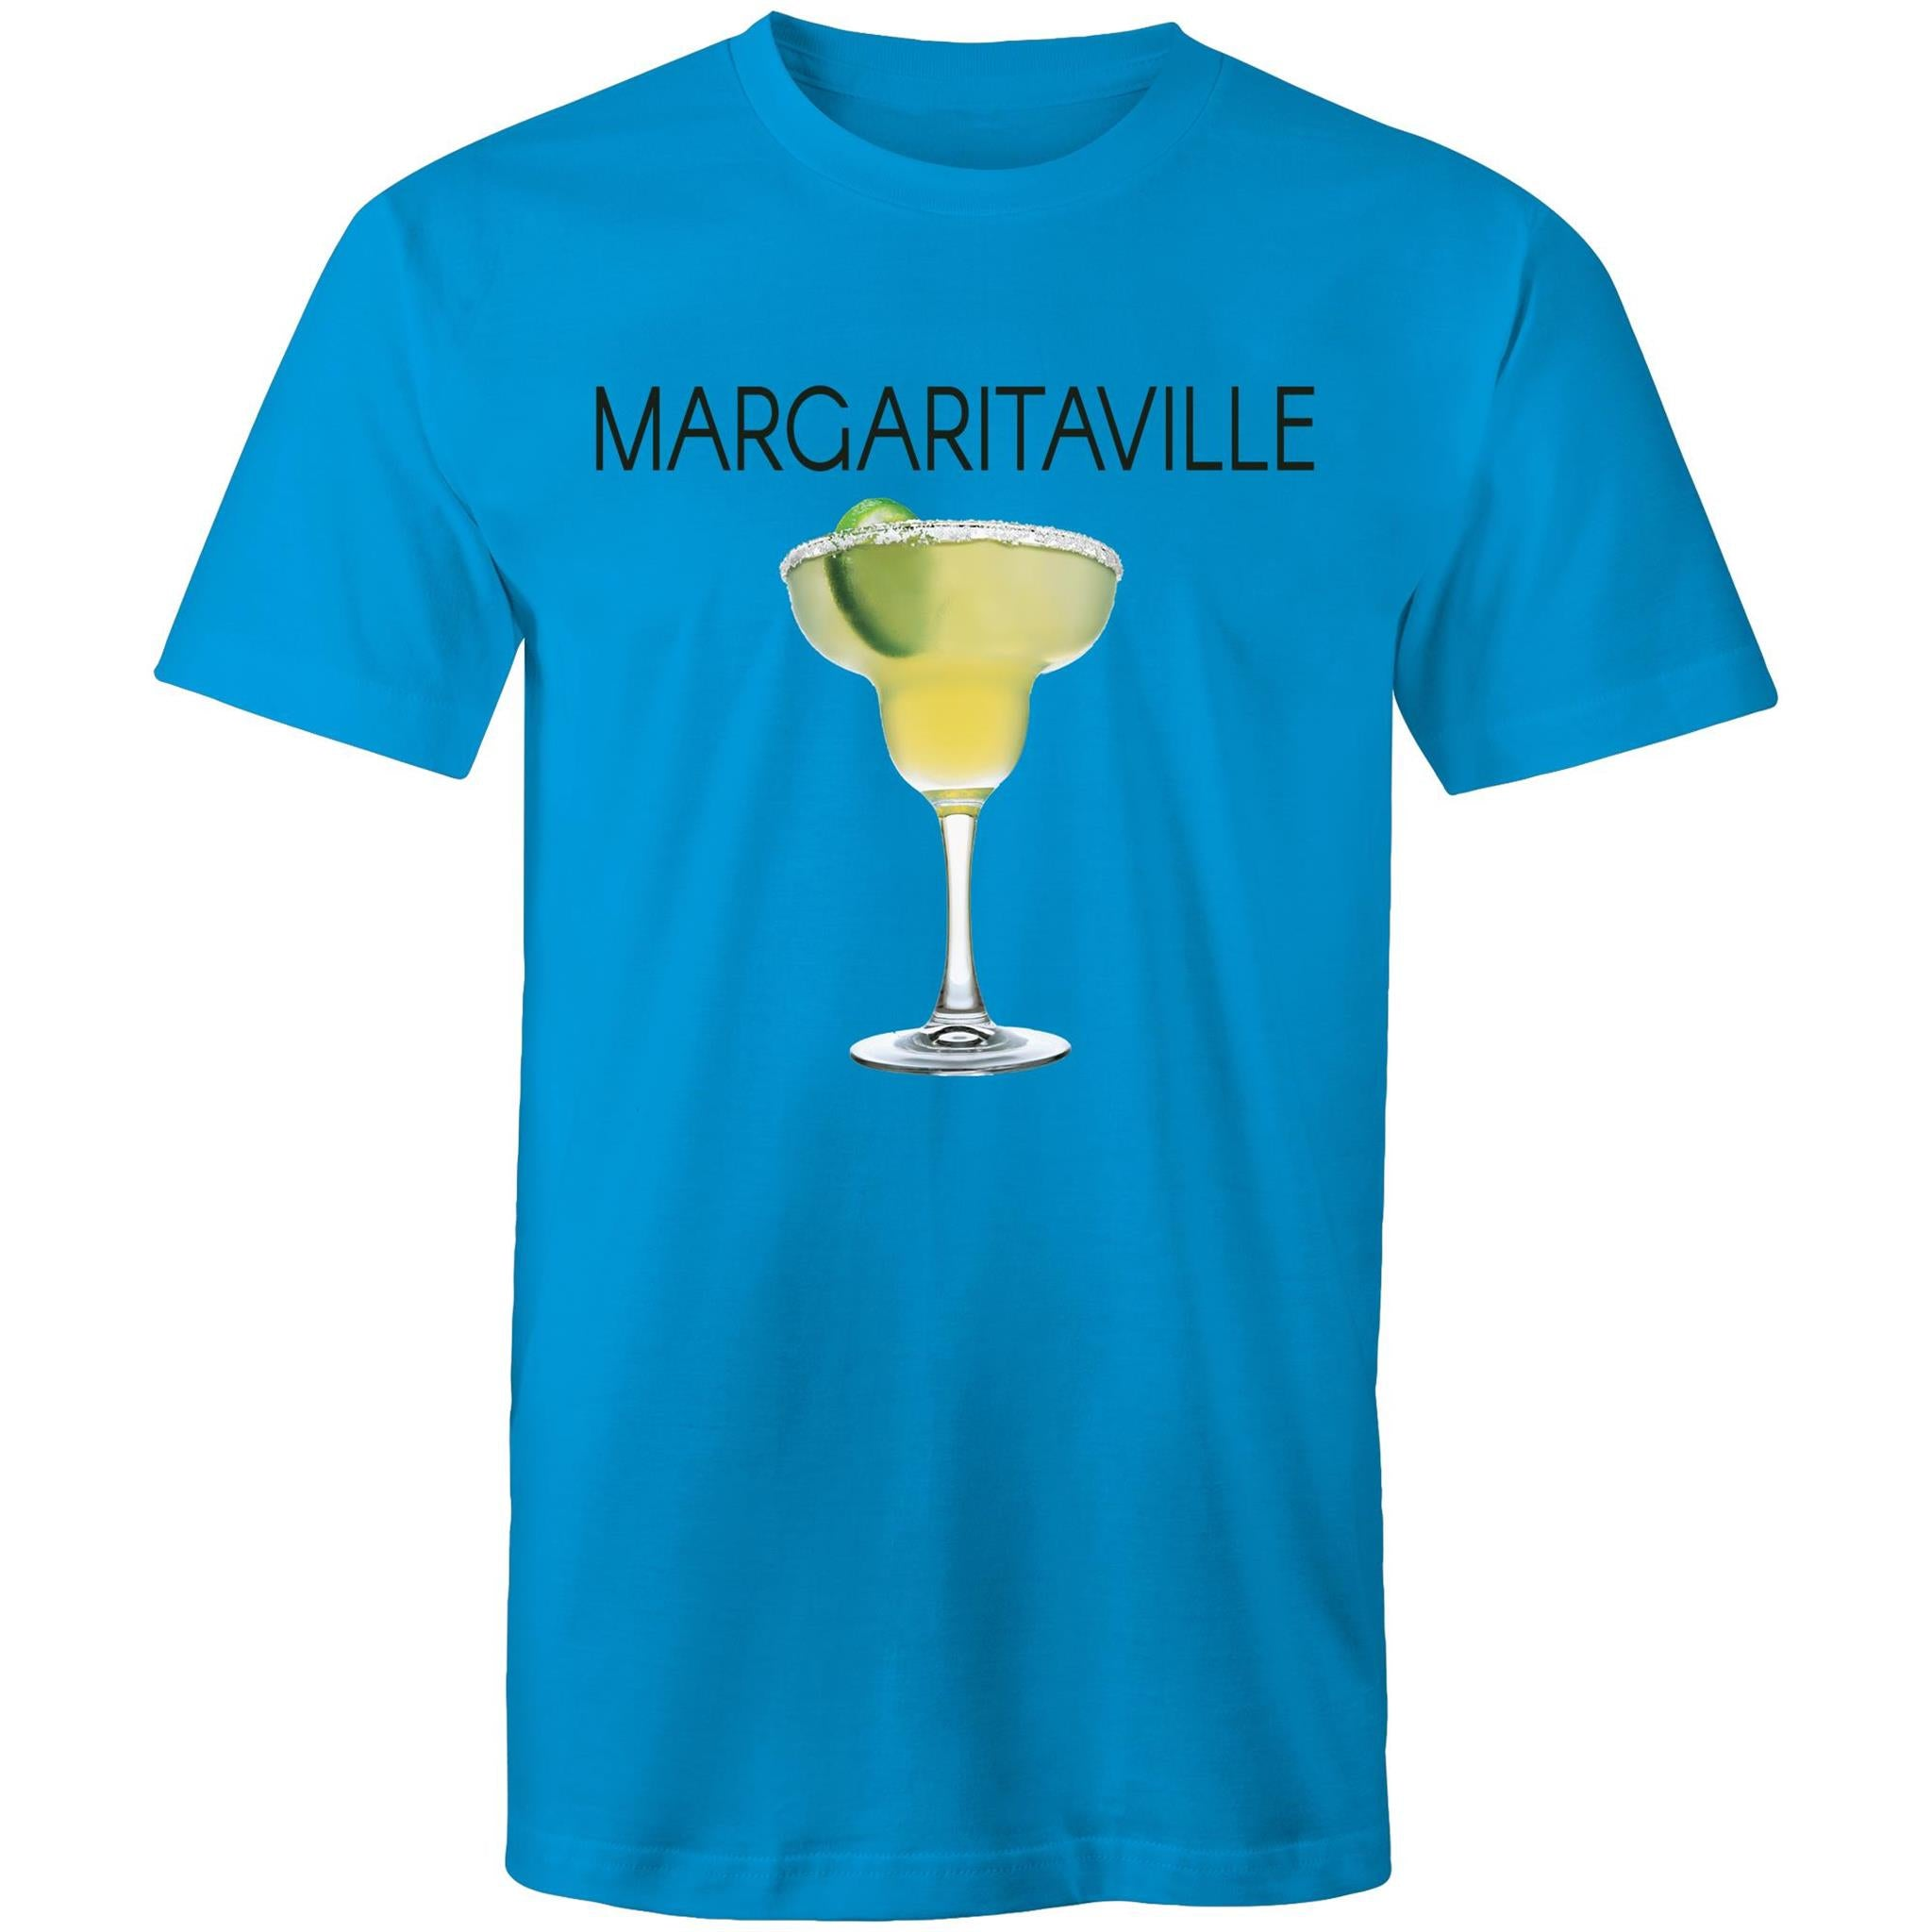 A blue T-shirt with an image of a frozen margarita, with Margaritaville written across the chest.